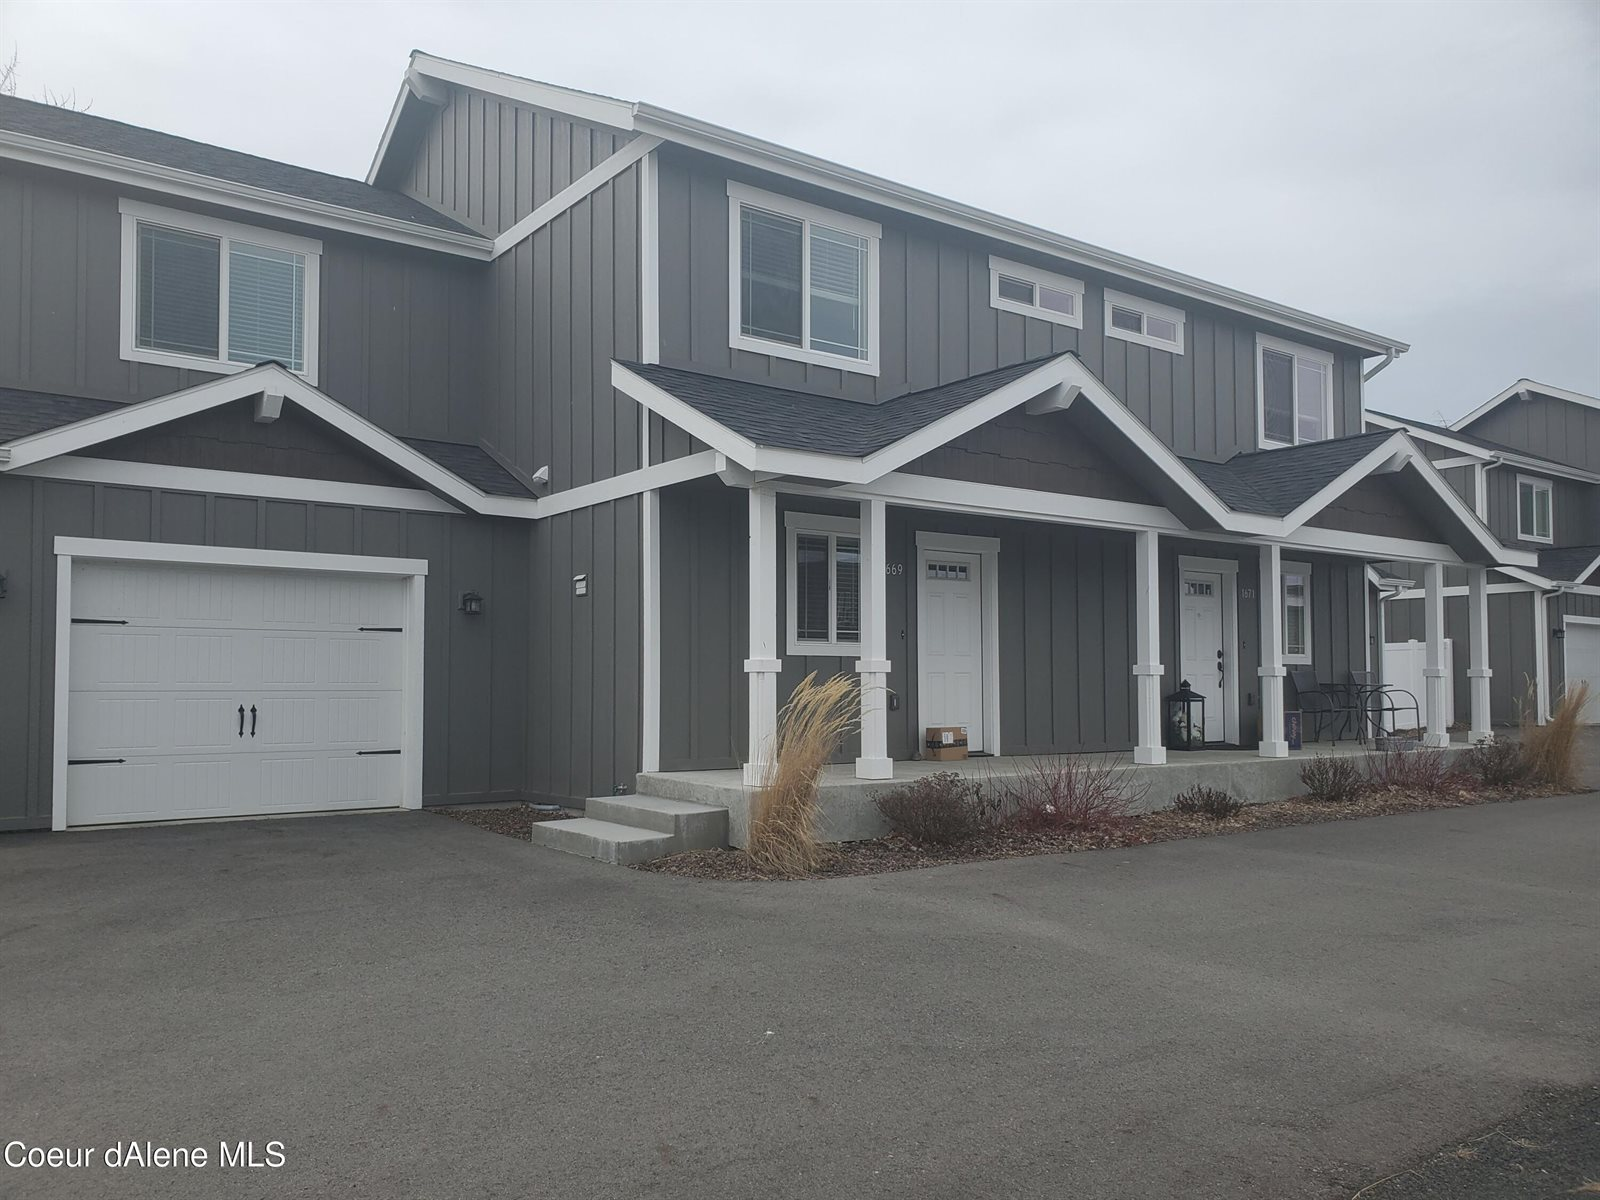 1669&1671 East Horsehaven Ave, Post Falls, ID 83854